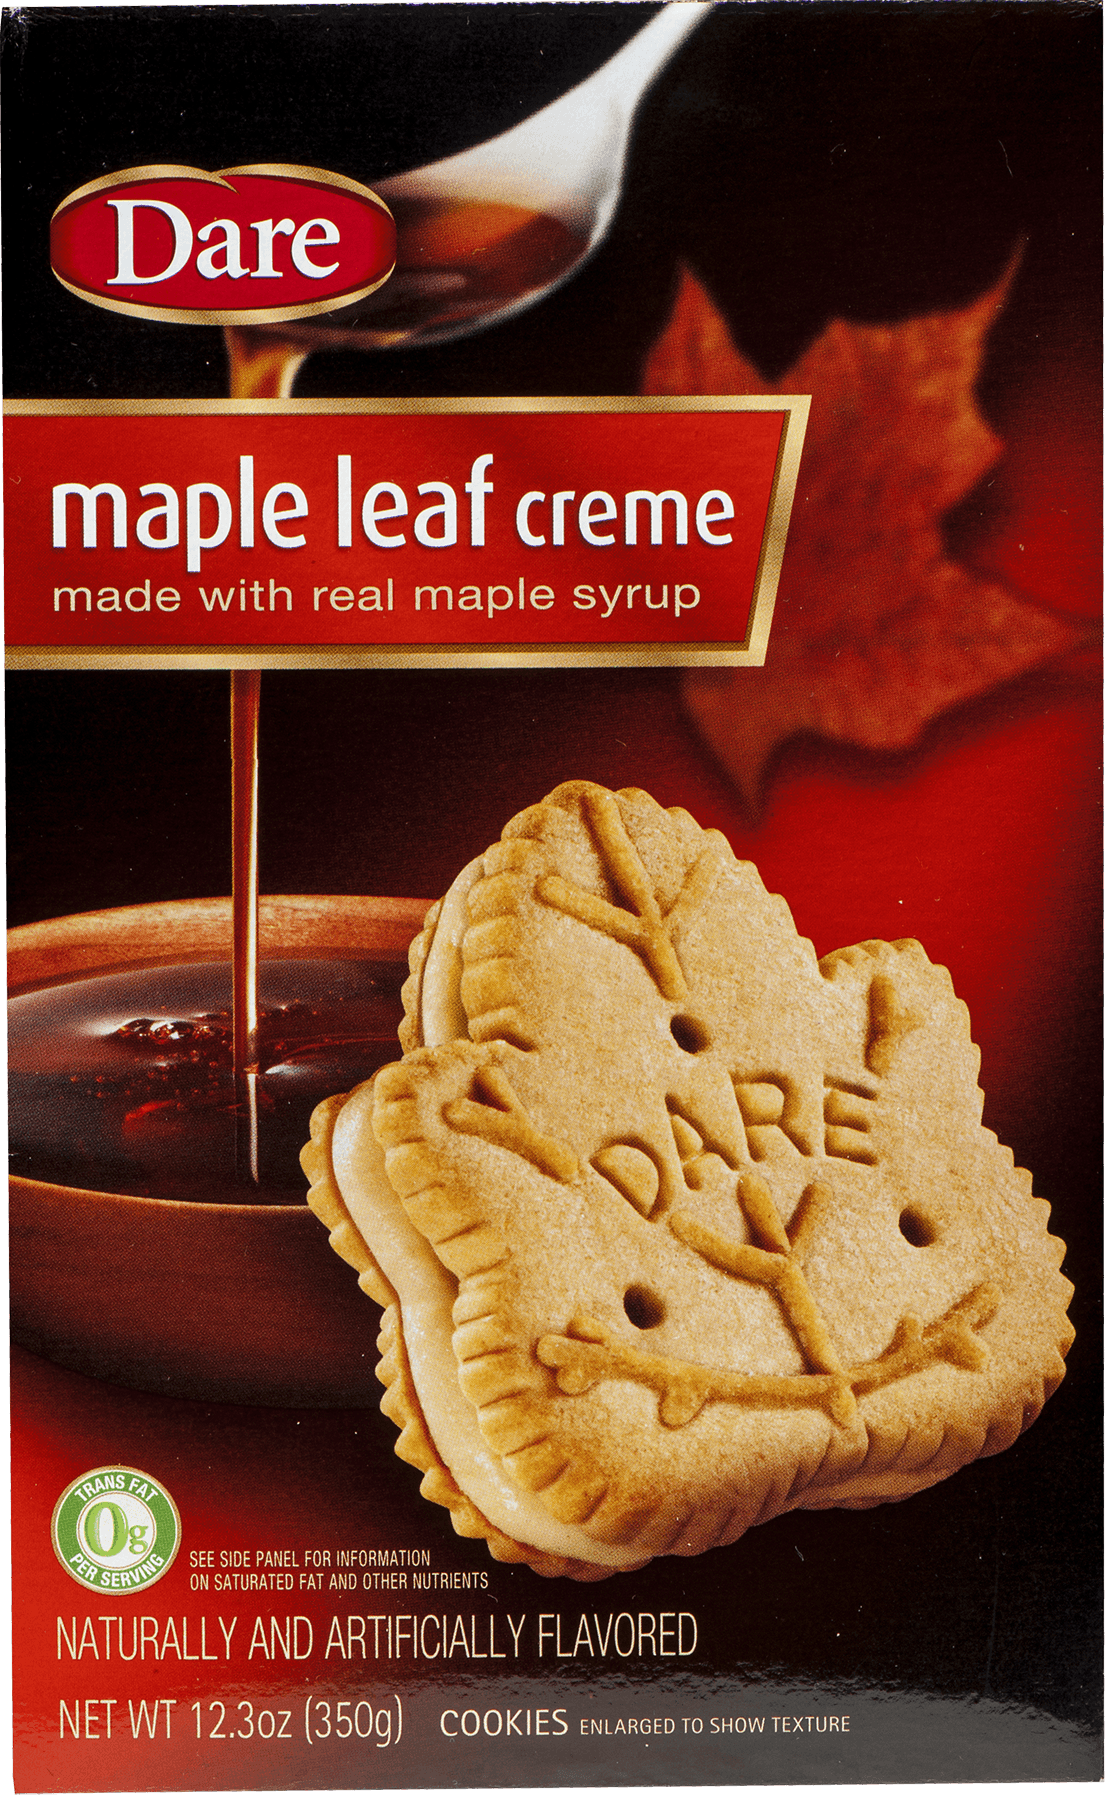 Details About Dare Maple Leaf Creme Cookies 12 3 Oz